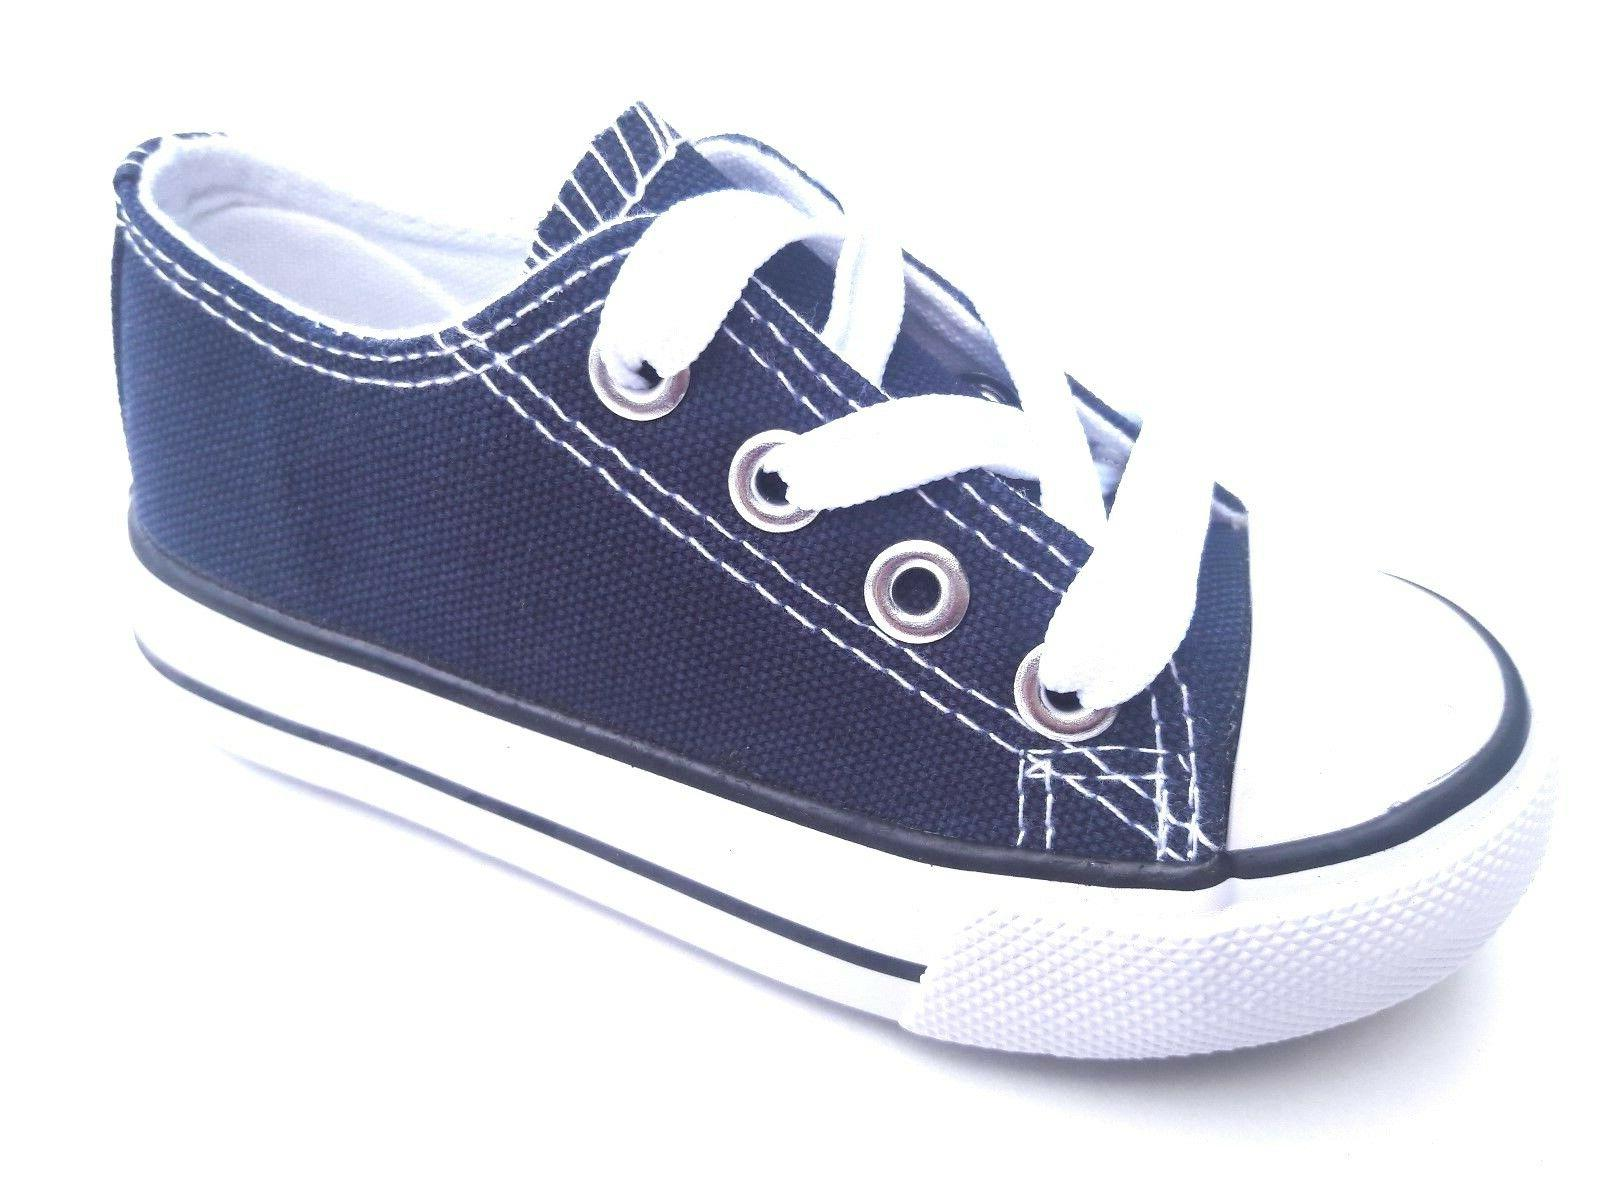 Toddler low canvas shoes 7-10 new